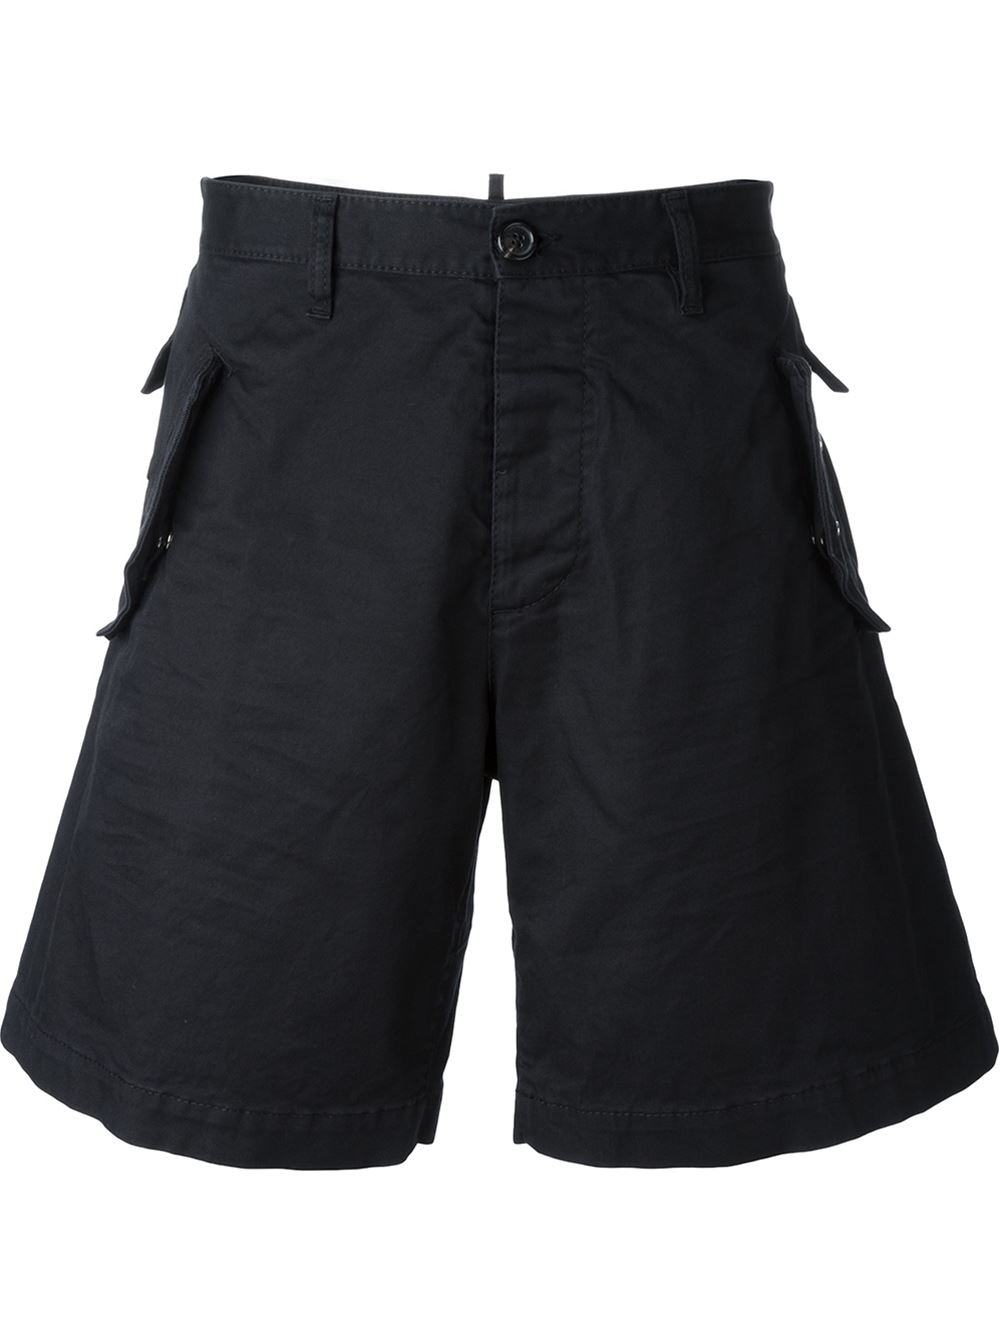 A Line Shorts H-line Shorts Short Shorts Light Blue Short Shorts Navy Blue Short Shorts Orange Short Shorts Pink Short Shorts White Short Shorts Tan Short Shorts. Stay in the Know! Be the first to know about new arrivals, look books, sales & promos! Company. About .